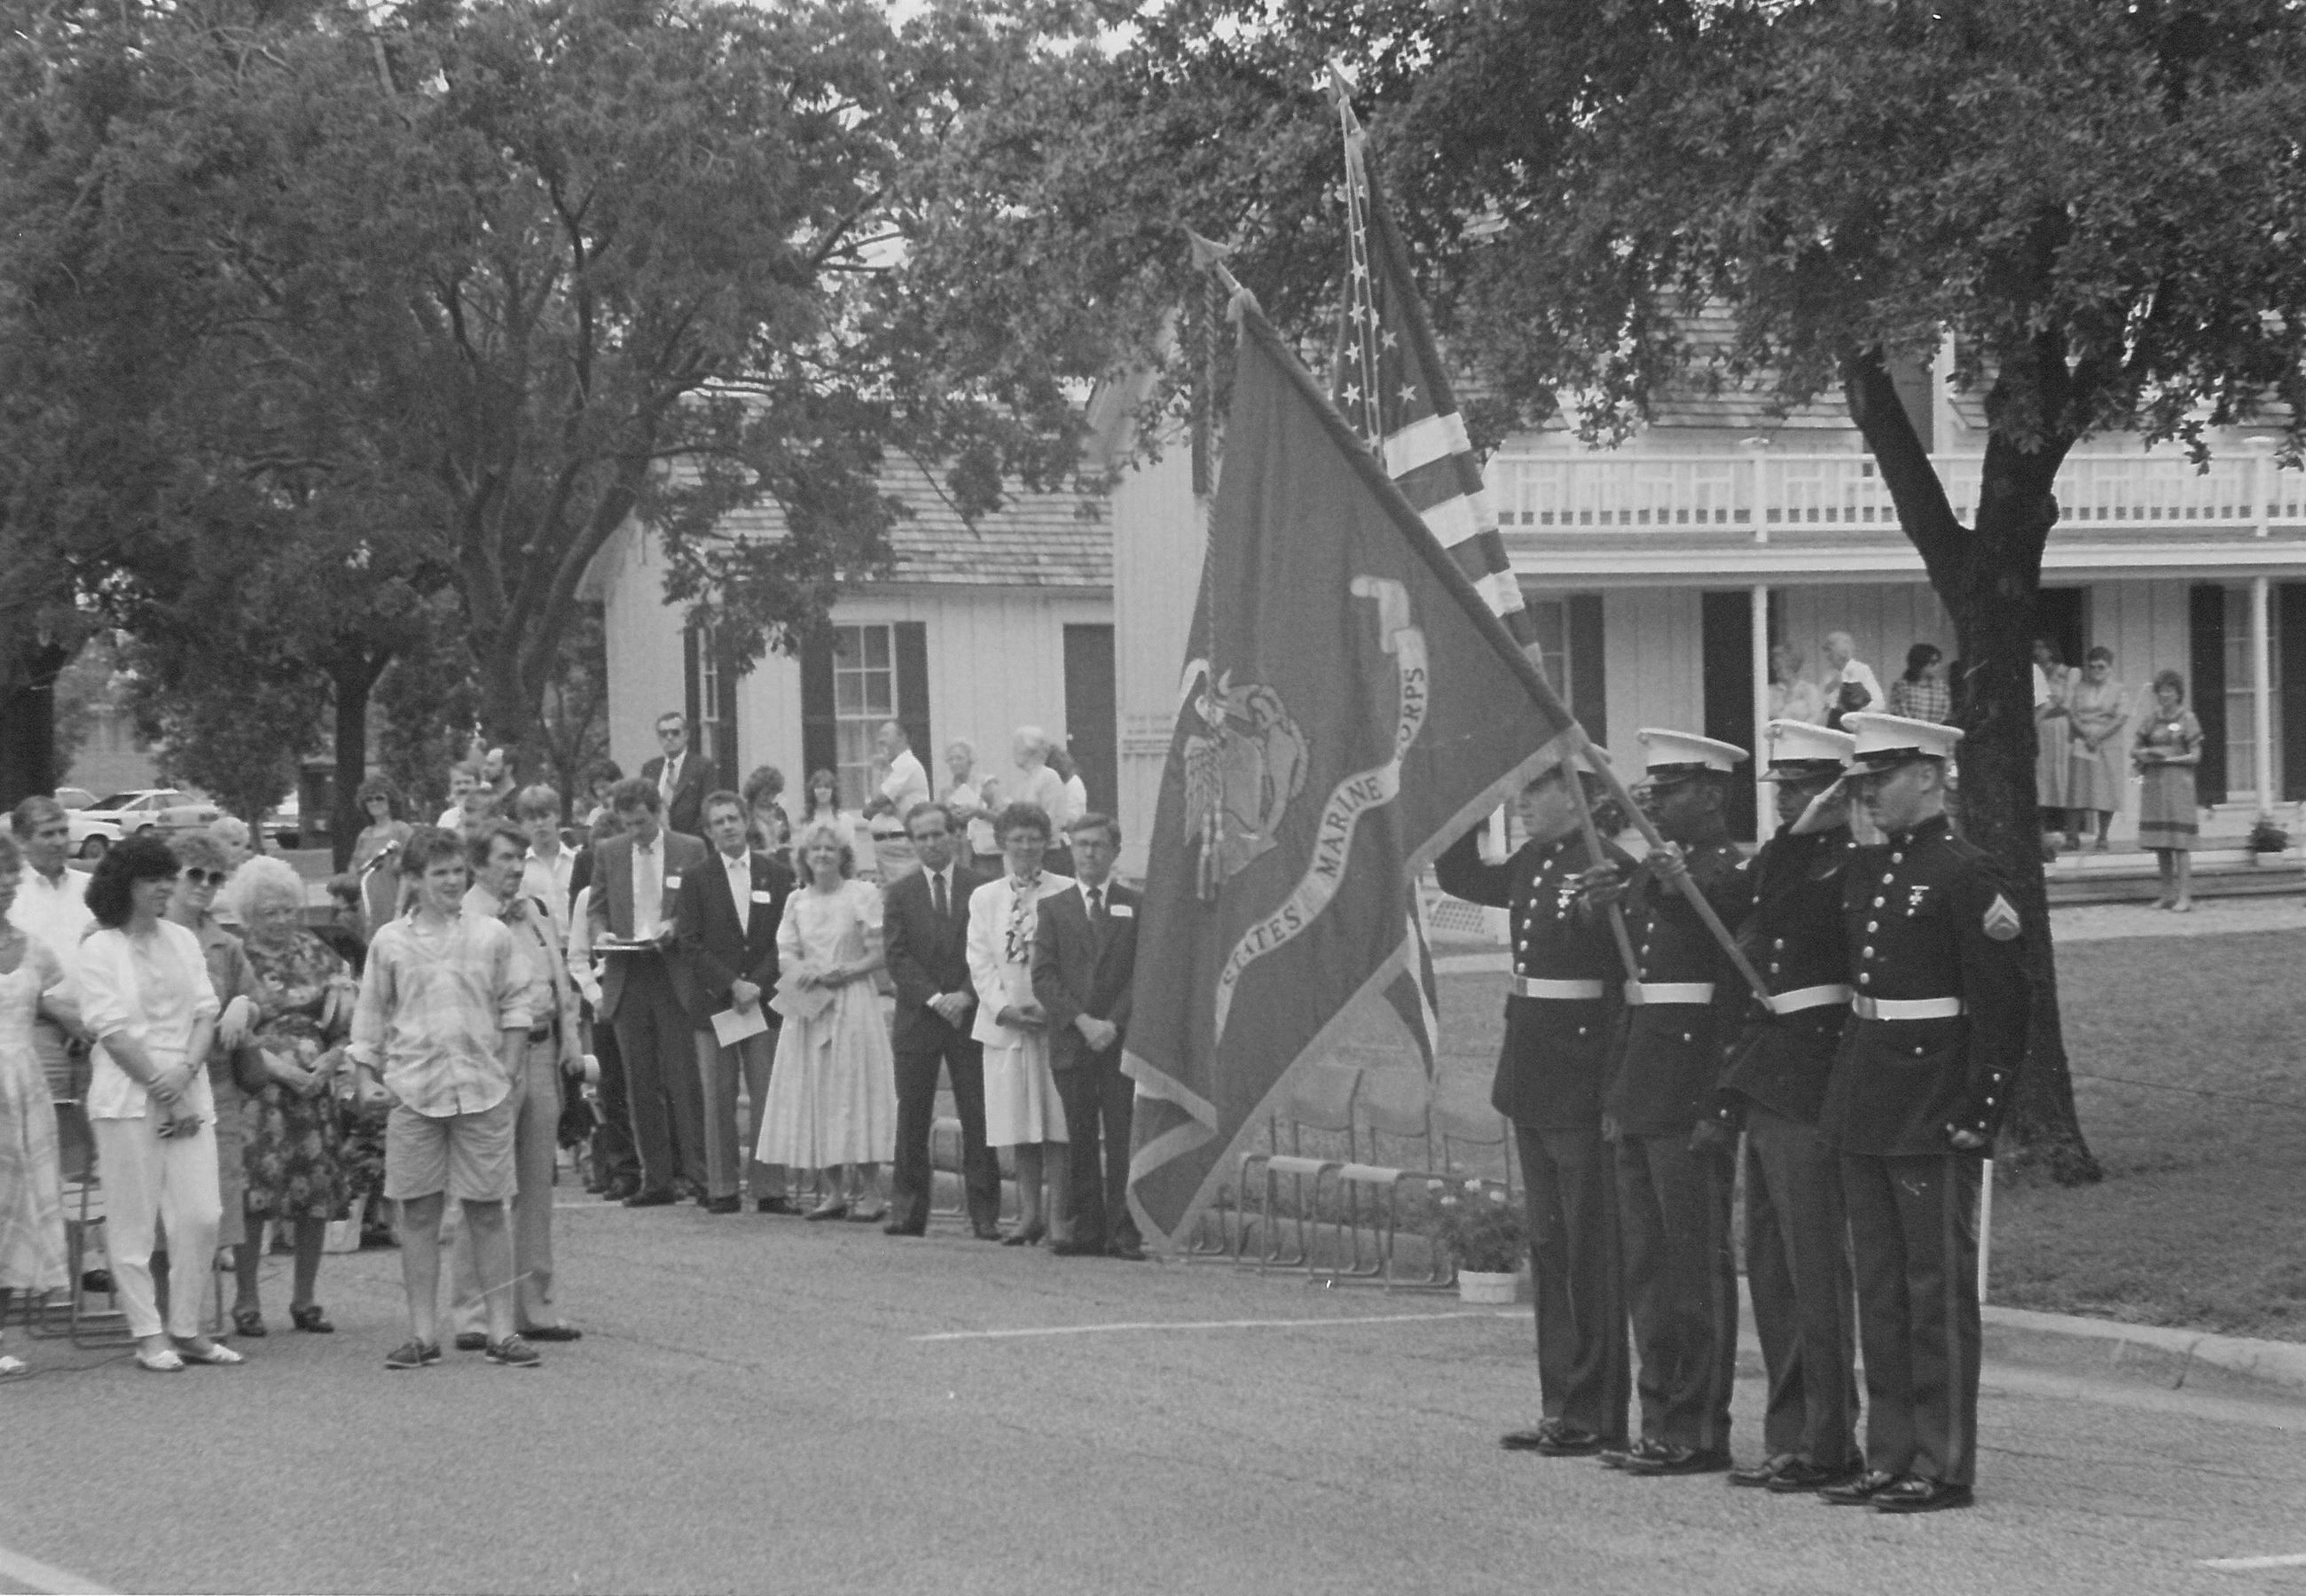 Parade in Front of the Tinsley-Lyles House